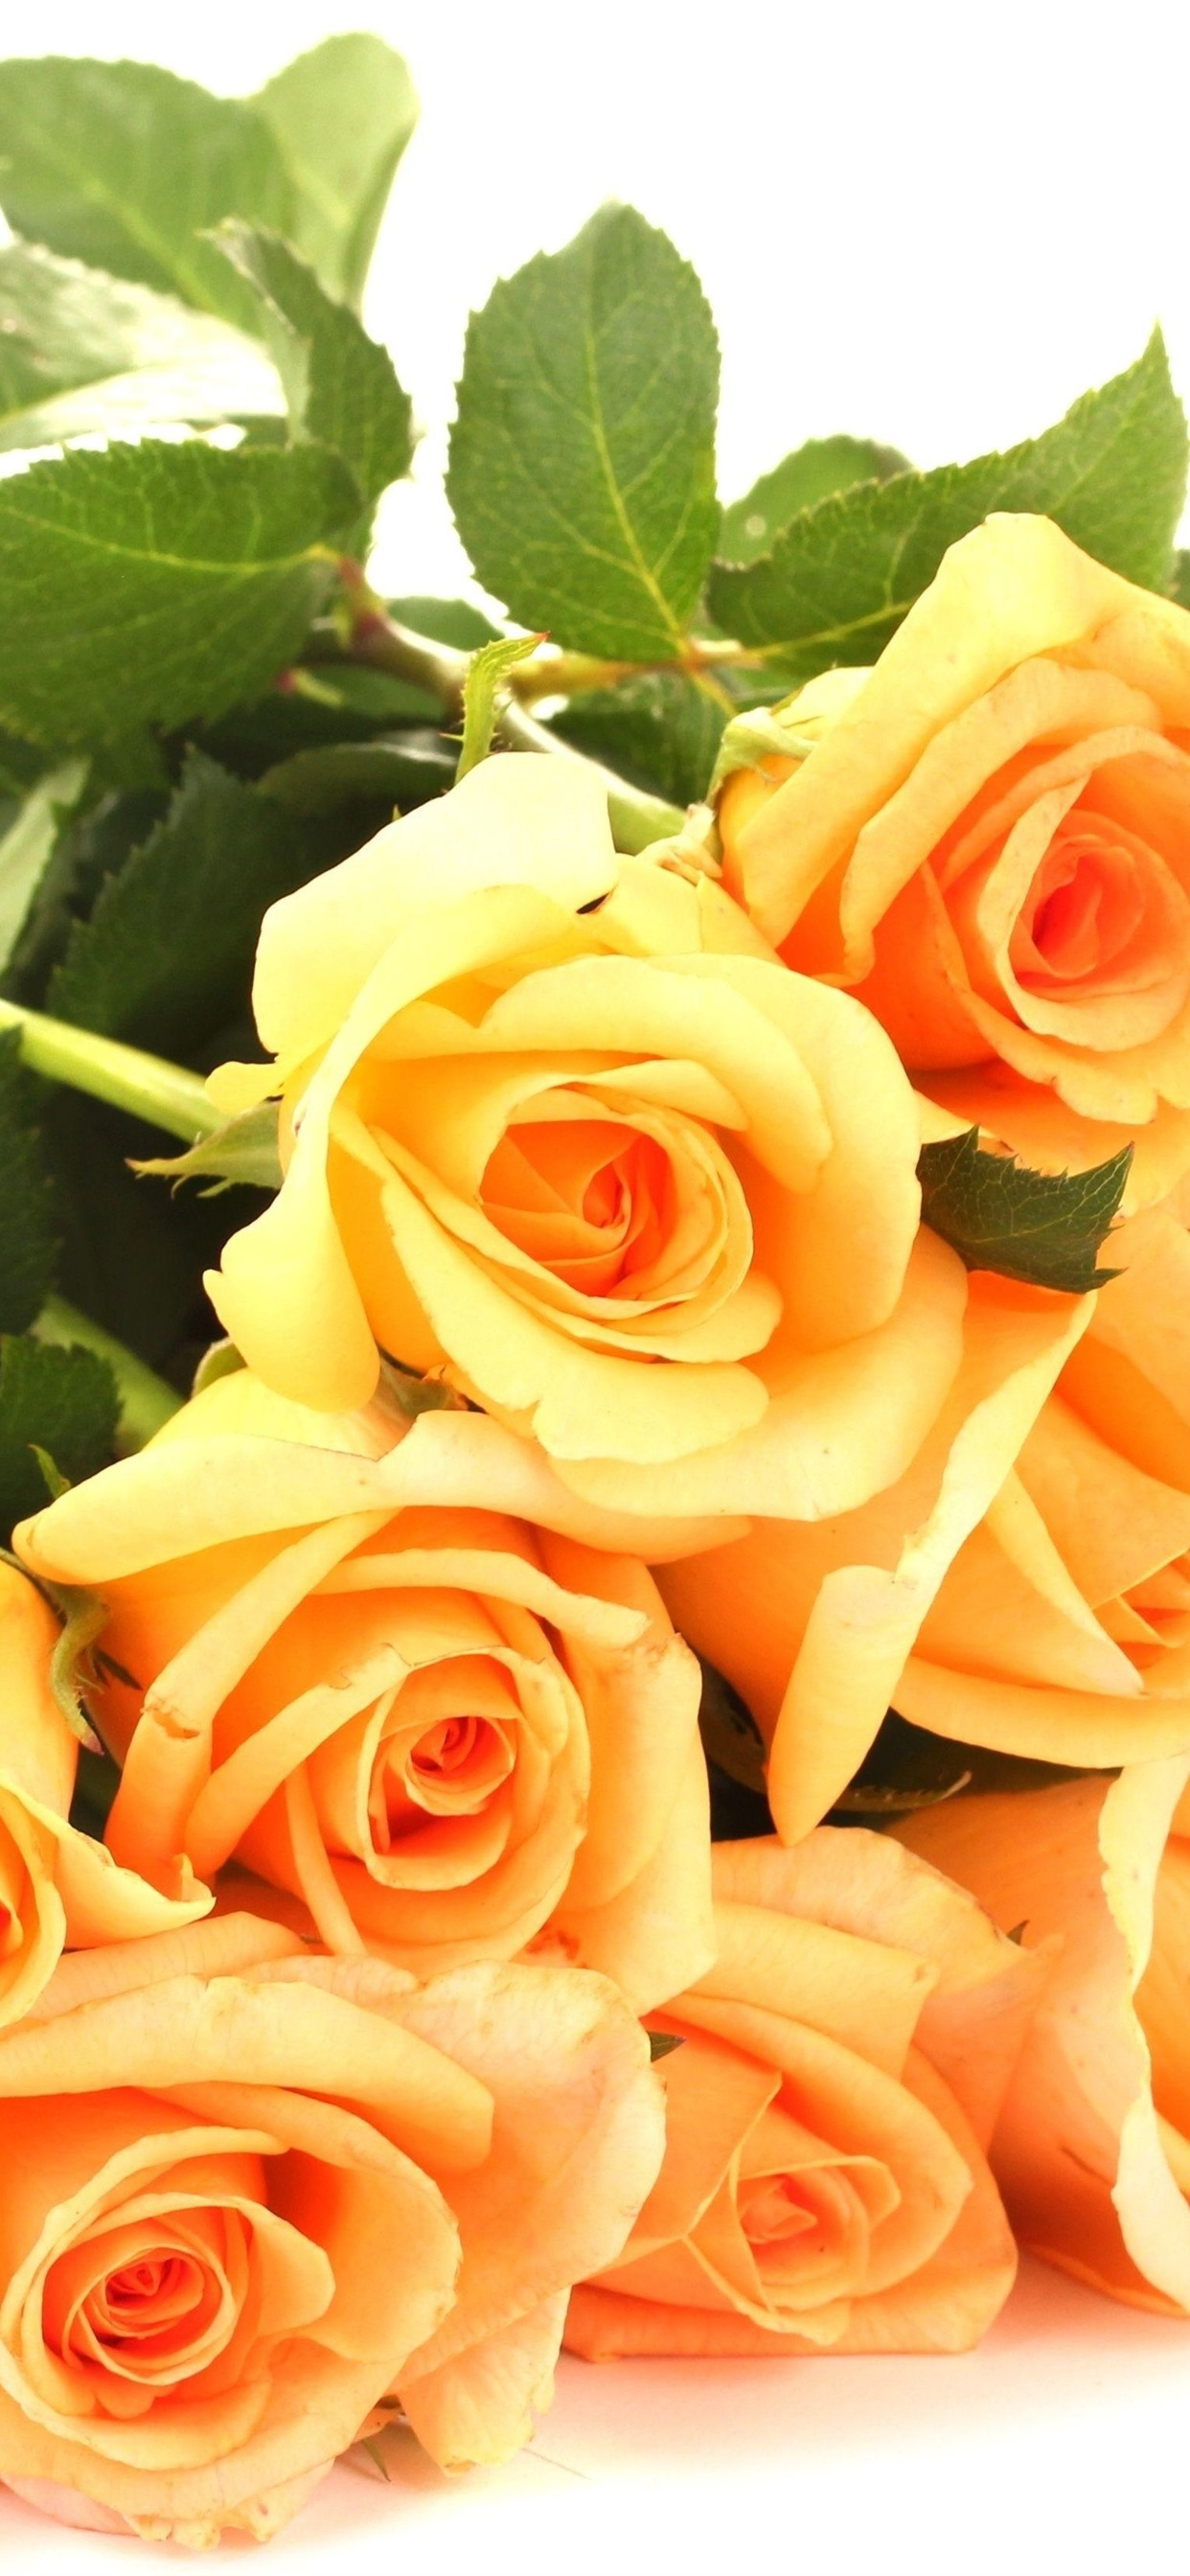 Yellow Roses White Background 1242x2688 Iphone 11 Pro Xs Max Wallpaper Background Picture Image